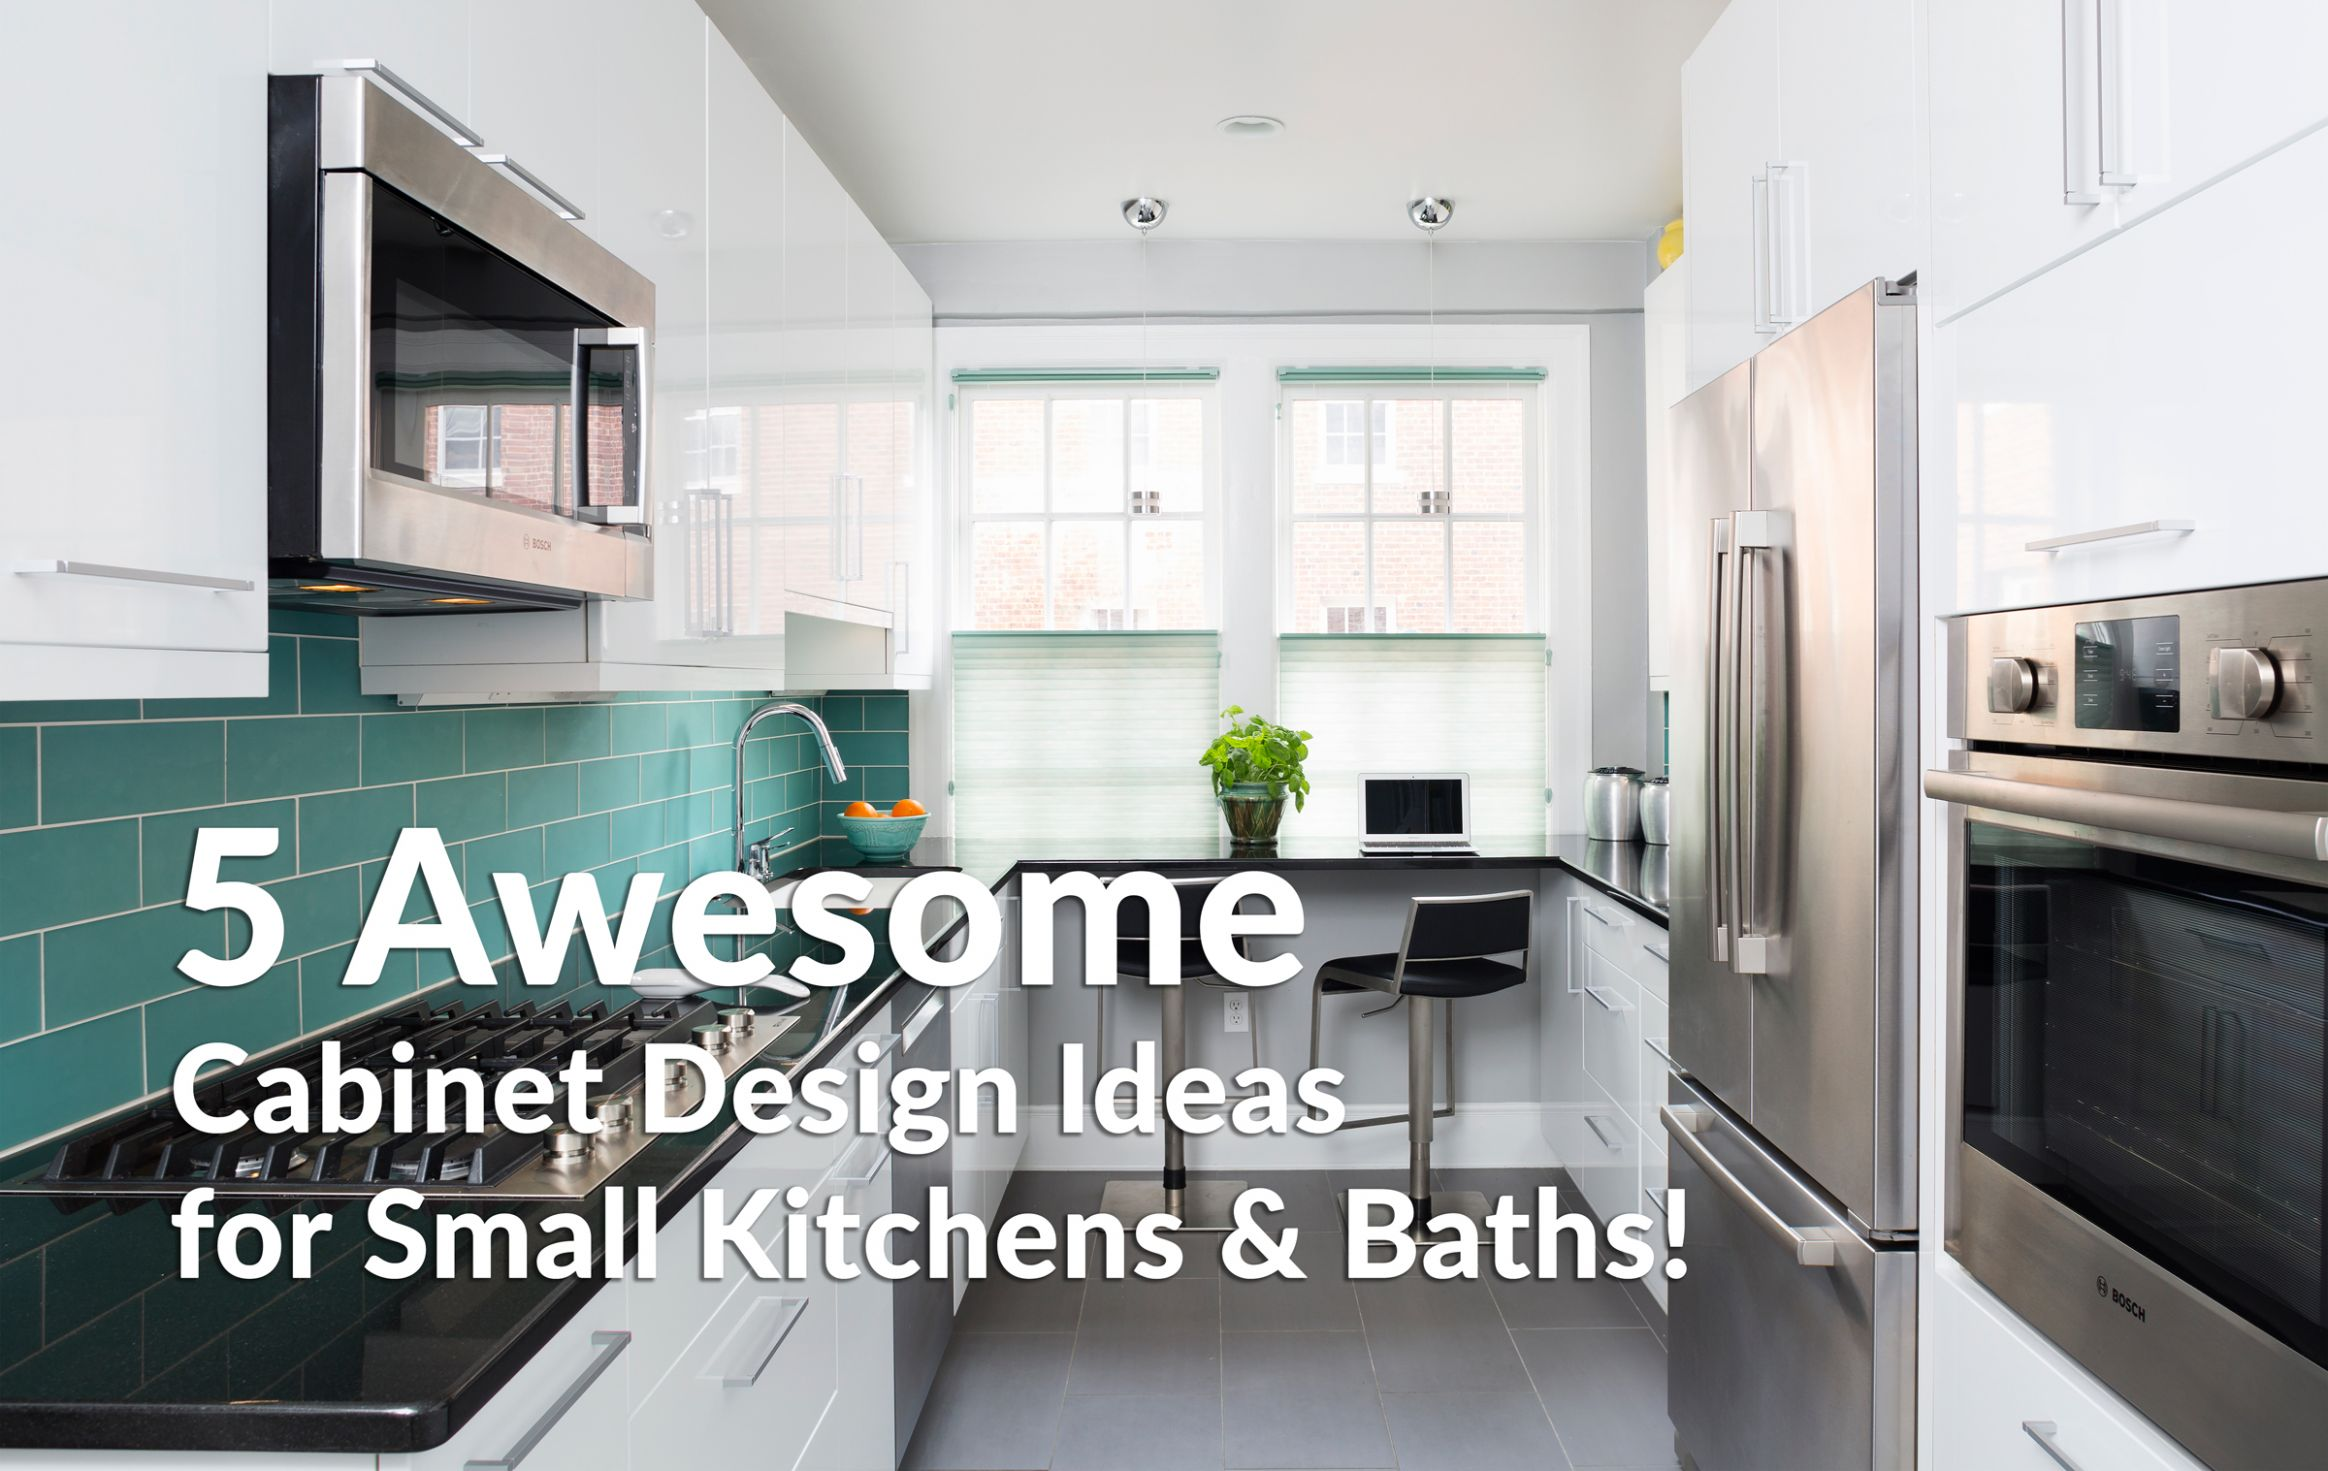 Small Kitchen Ideas to Maximize Your Space & More! - Crystal Cabinets - kitchen ideas small spaces